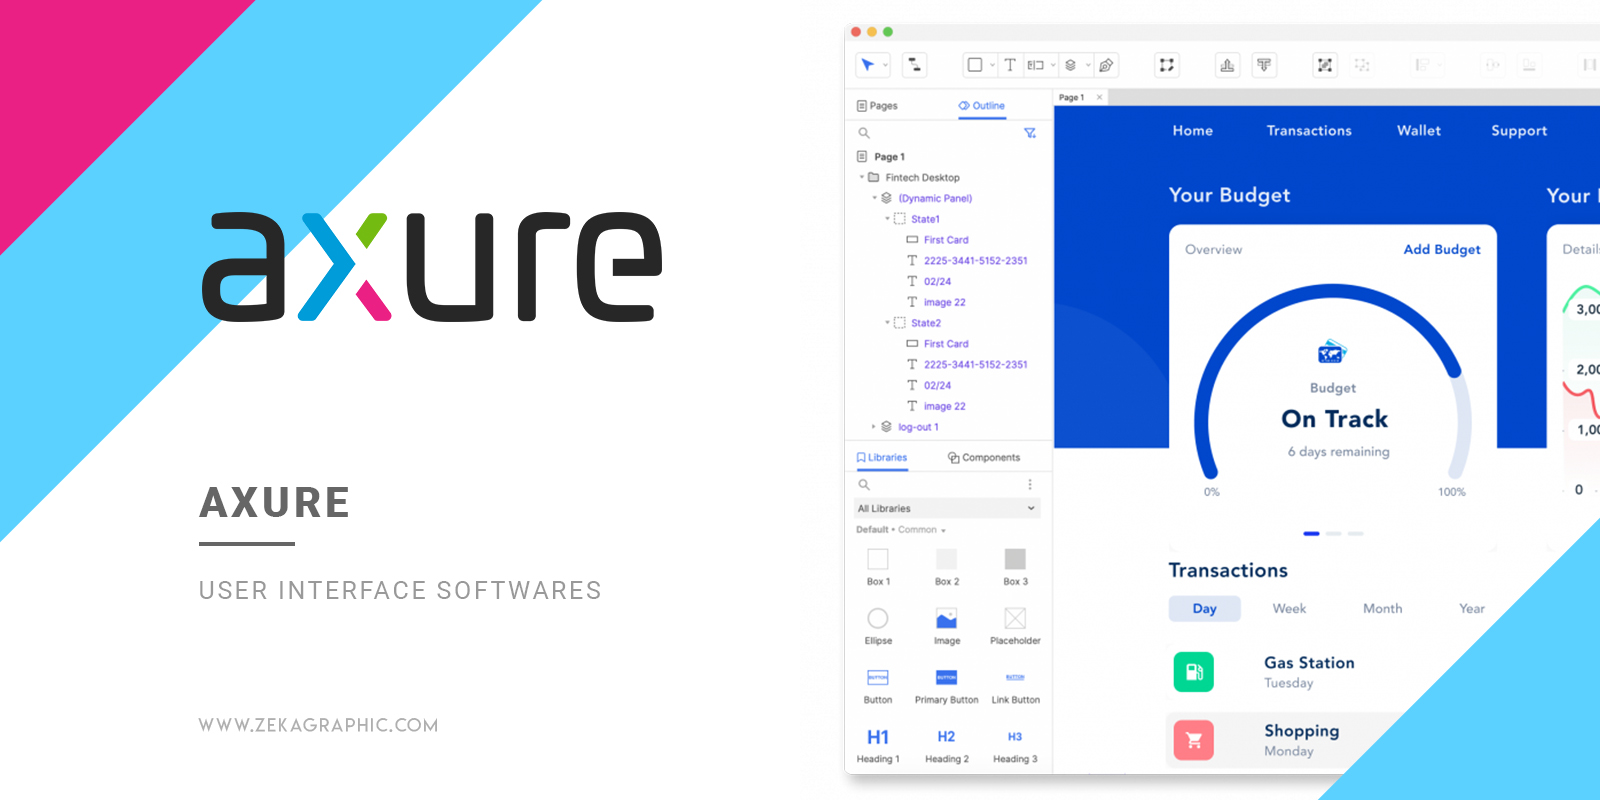 Axure User Interface Software for Graphic Design